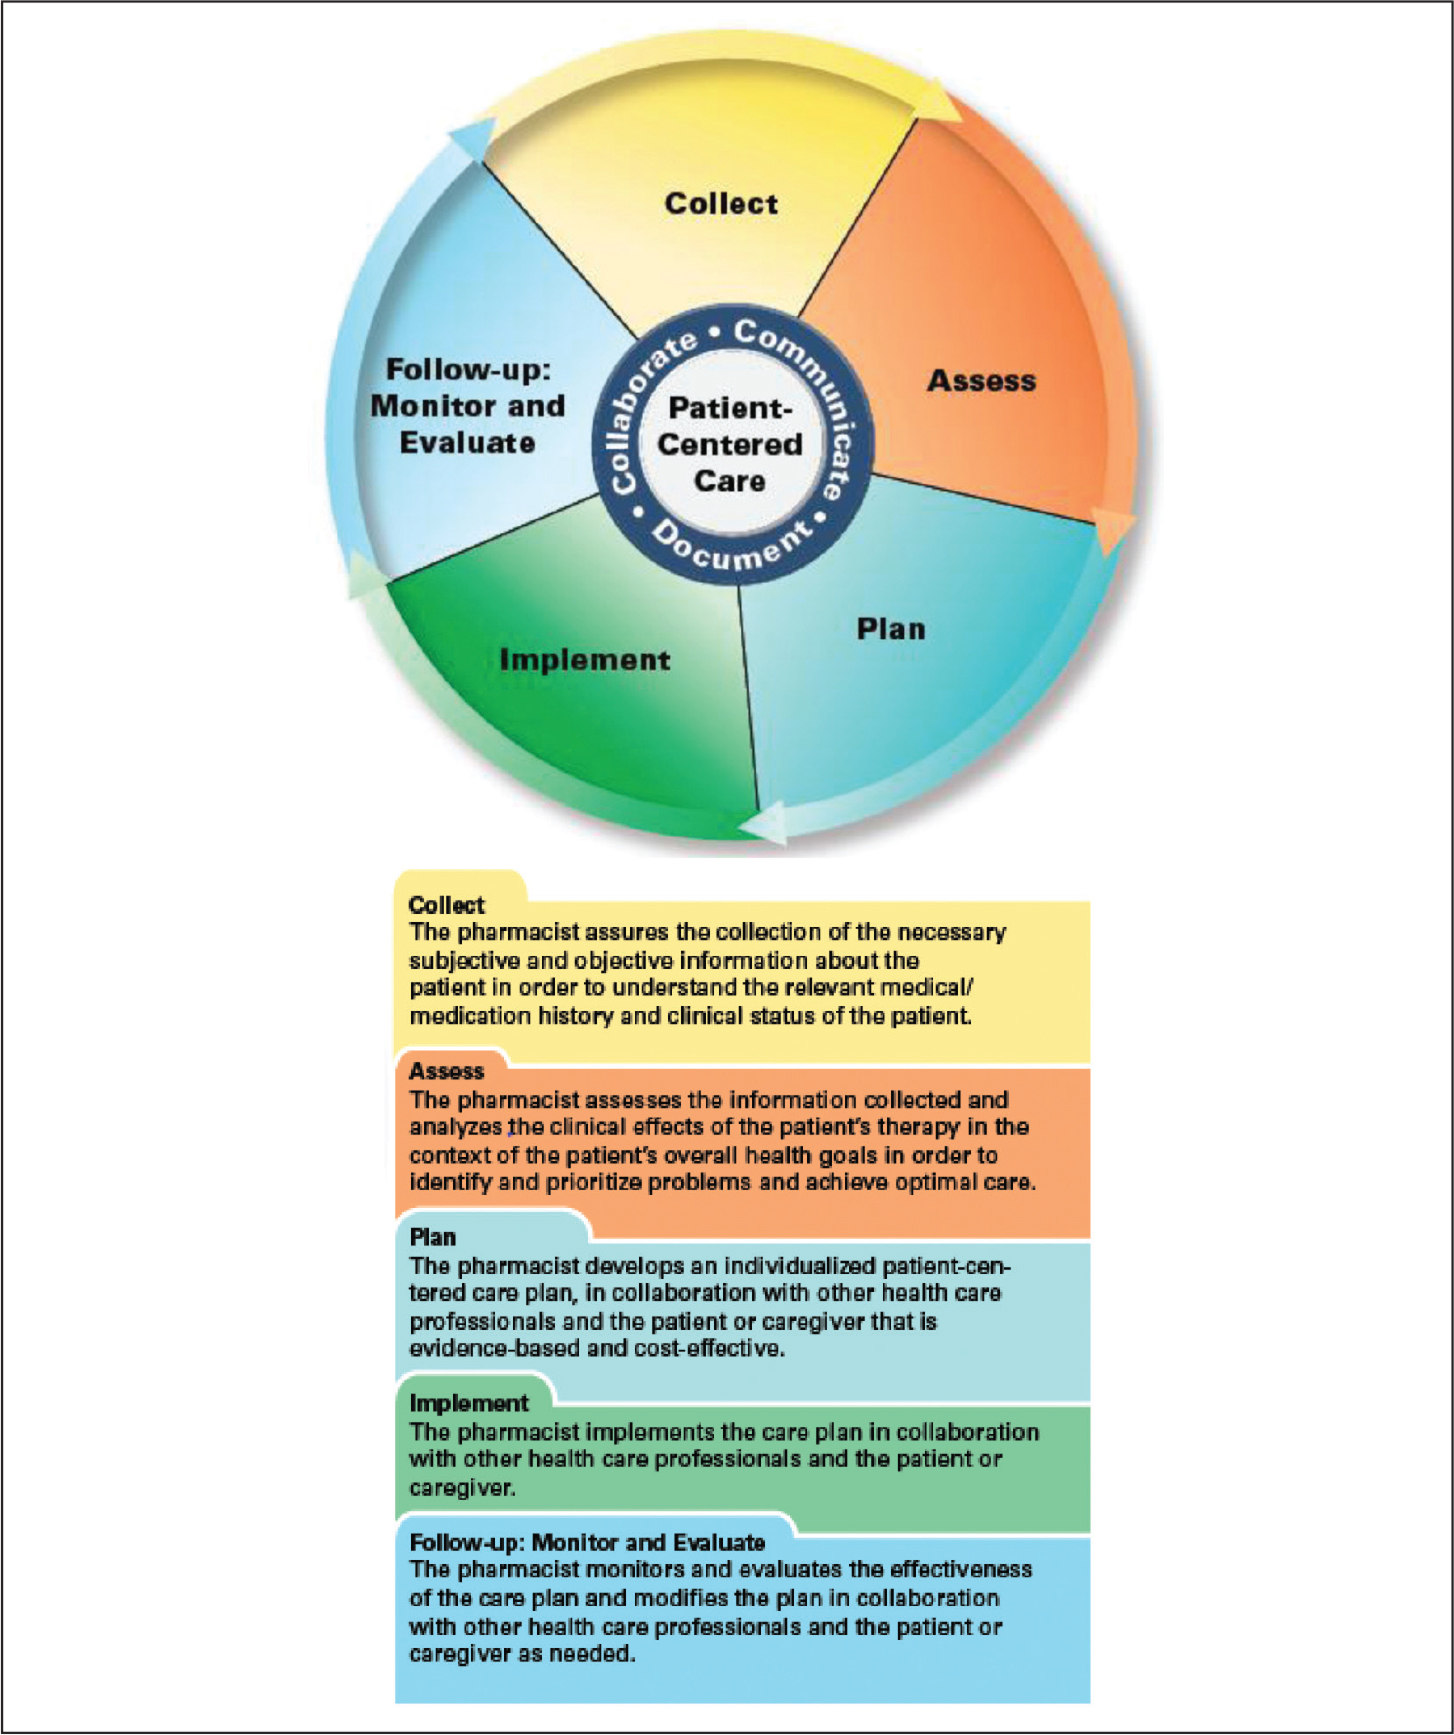 Pharmacists' Patient Care Process (Joint Commission of Pharmacy Practitioners [JCPP], 2014). Reprinted with permission from JCPP.